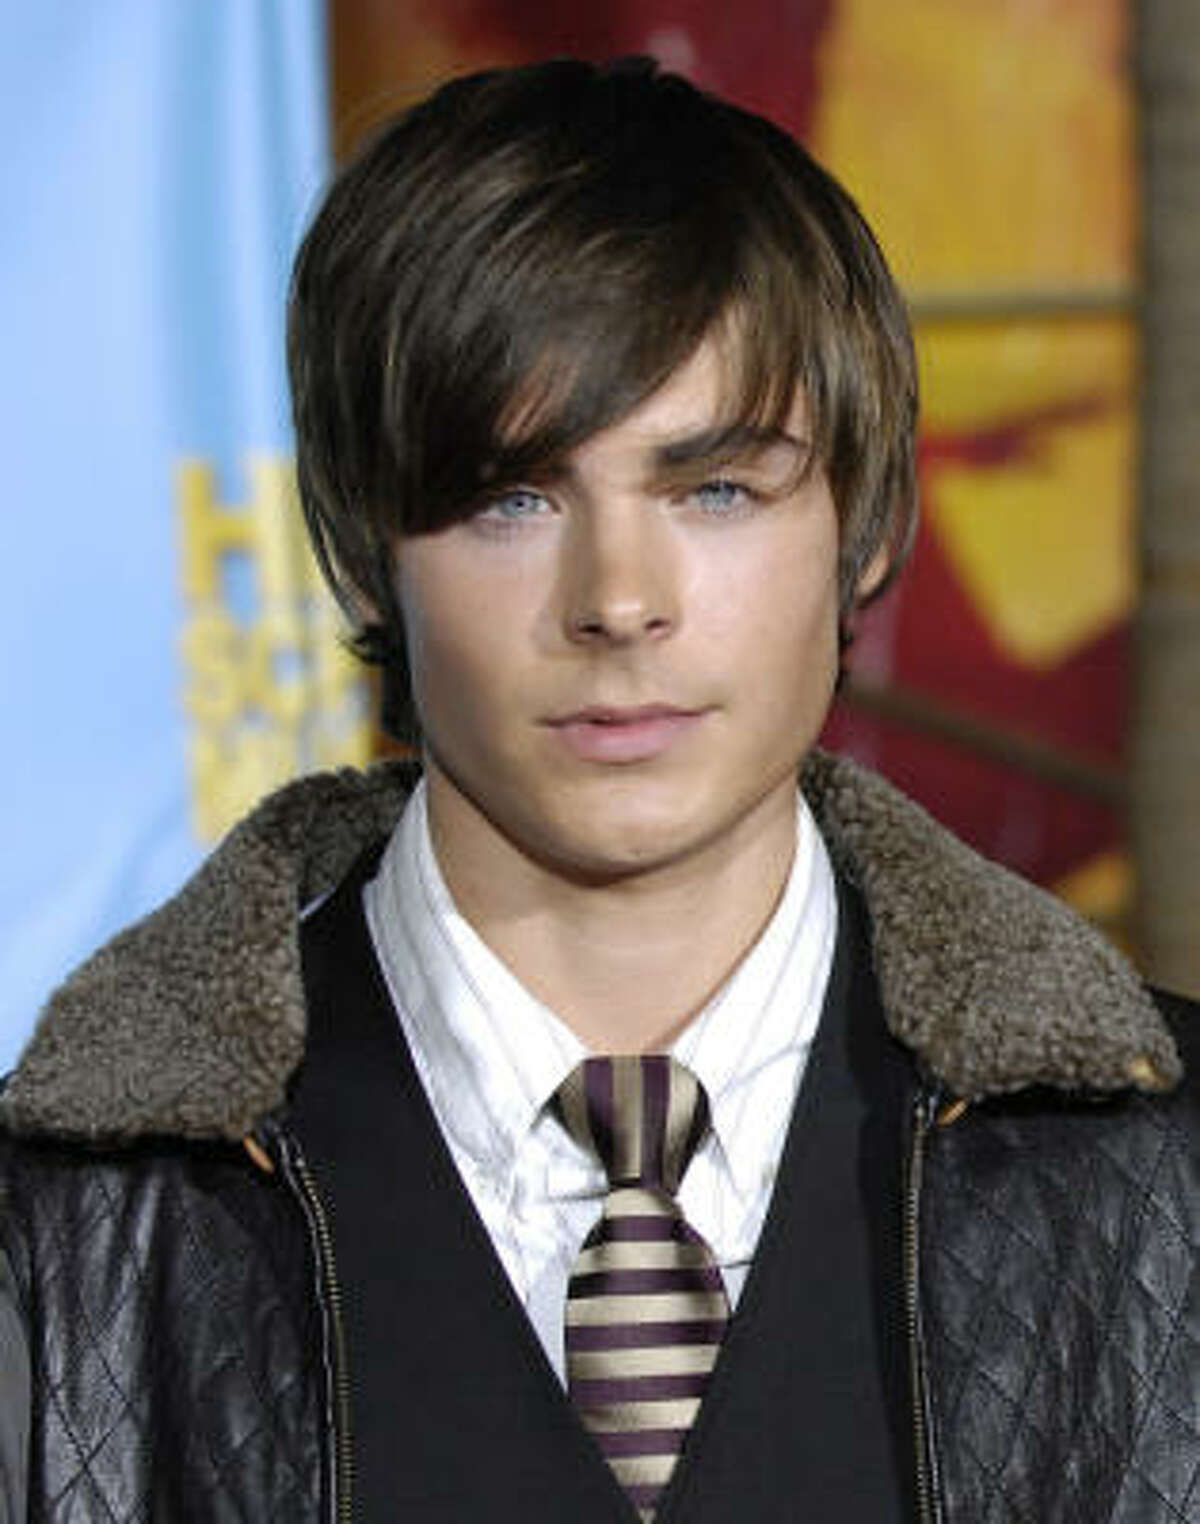 Zac Efron is definitely not the first boy to wear his hair long, but he could be credited with bringing it to the mainstream.